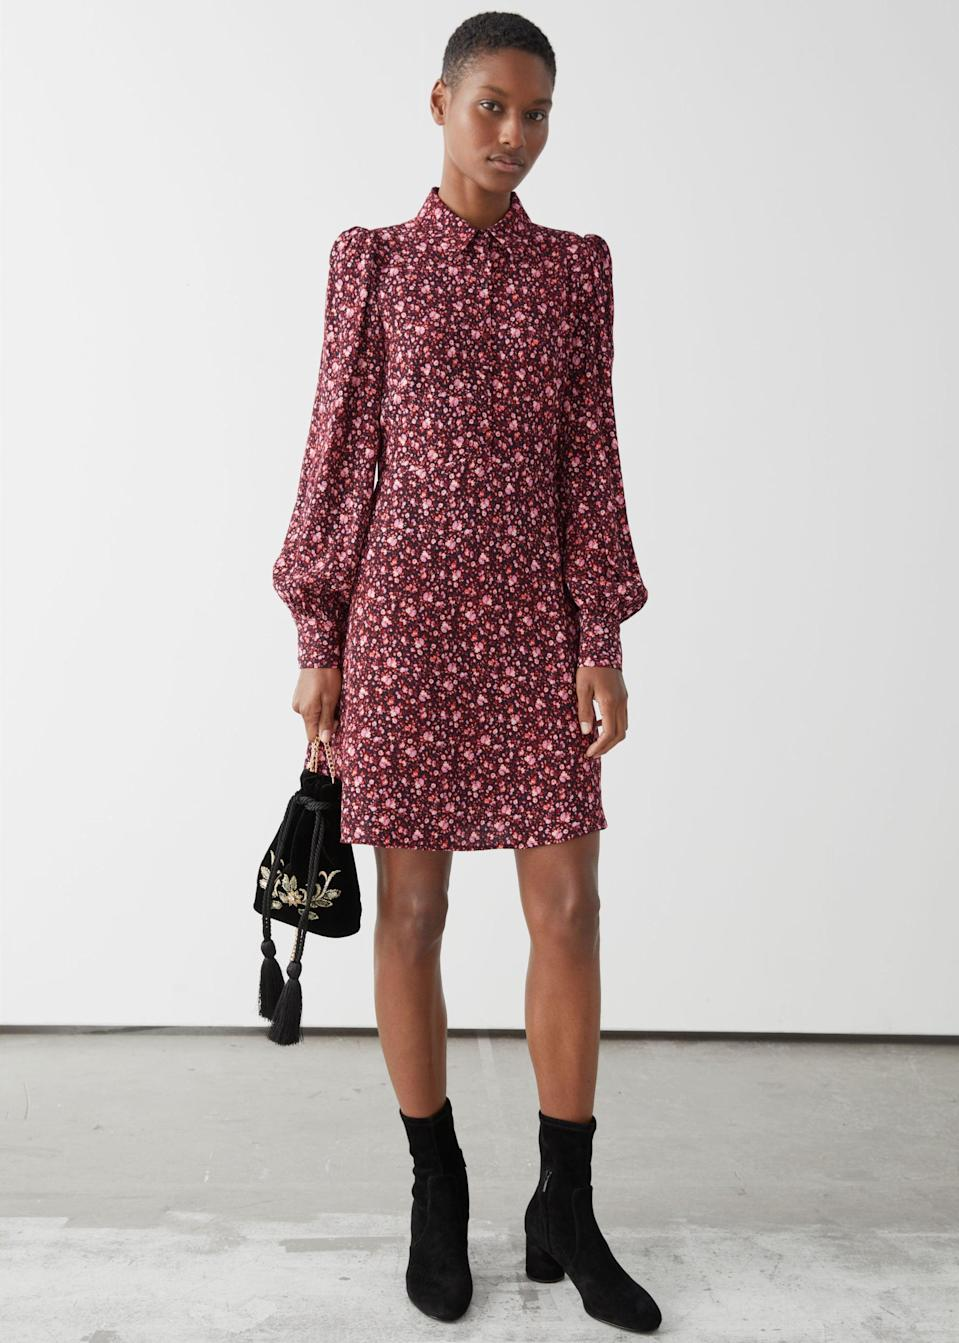 <p>You'll wear this <span>&amp; Other Stories Mini Shirt Dress</span> ($53, originally $89) to the office or afterwork shenanigans.</p>